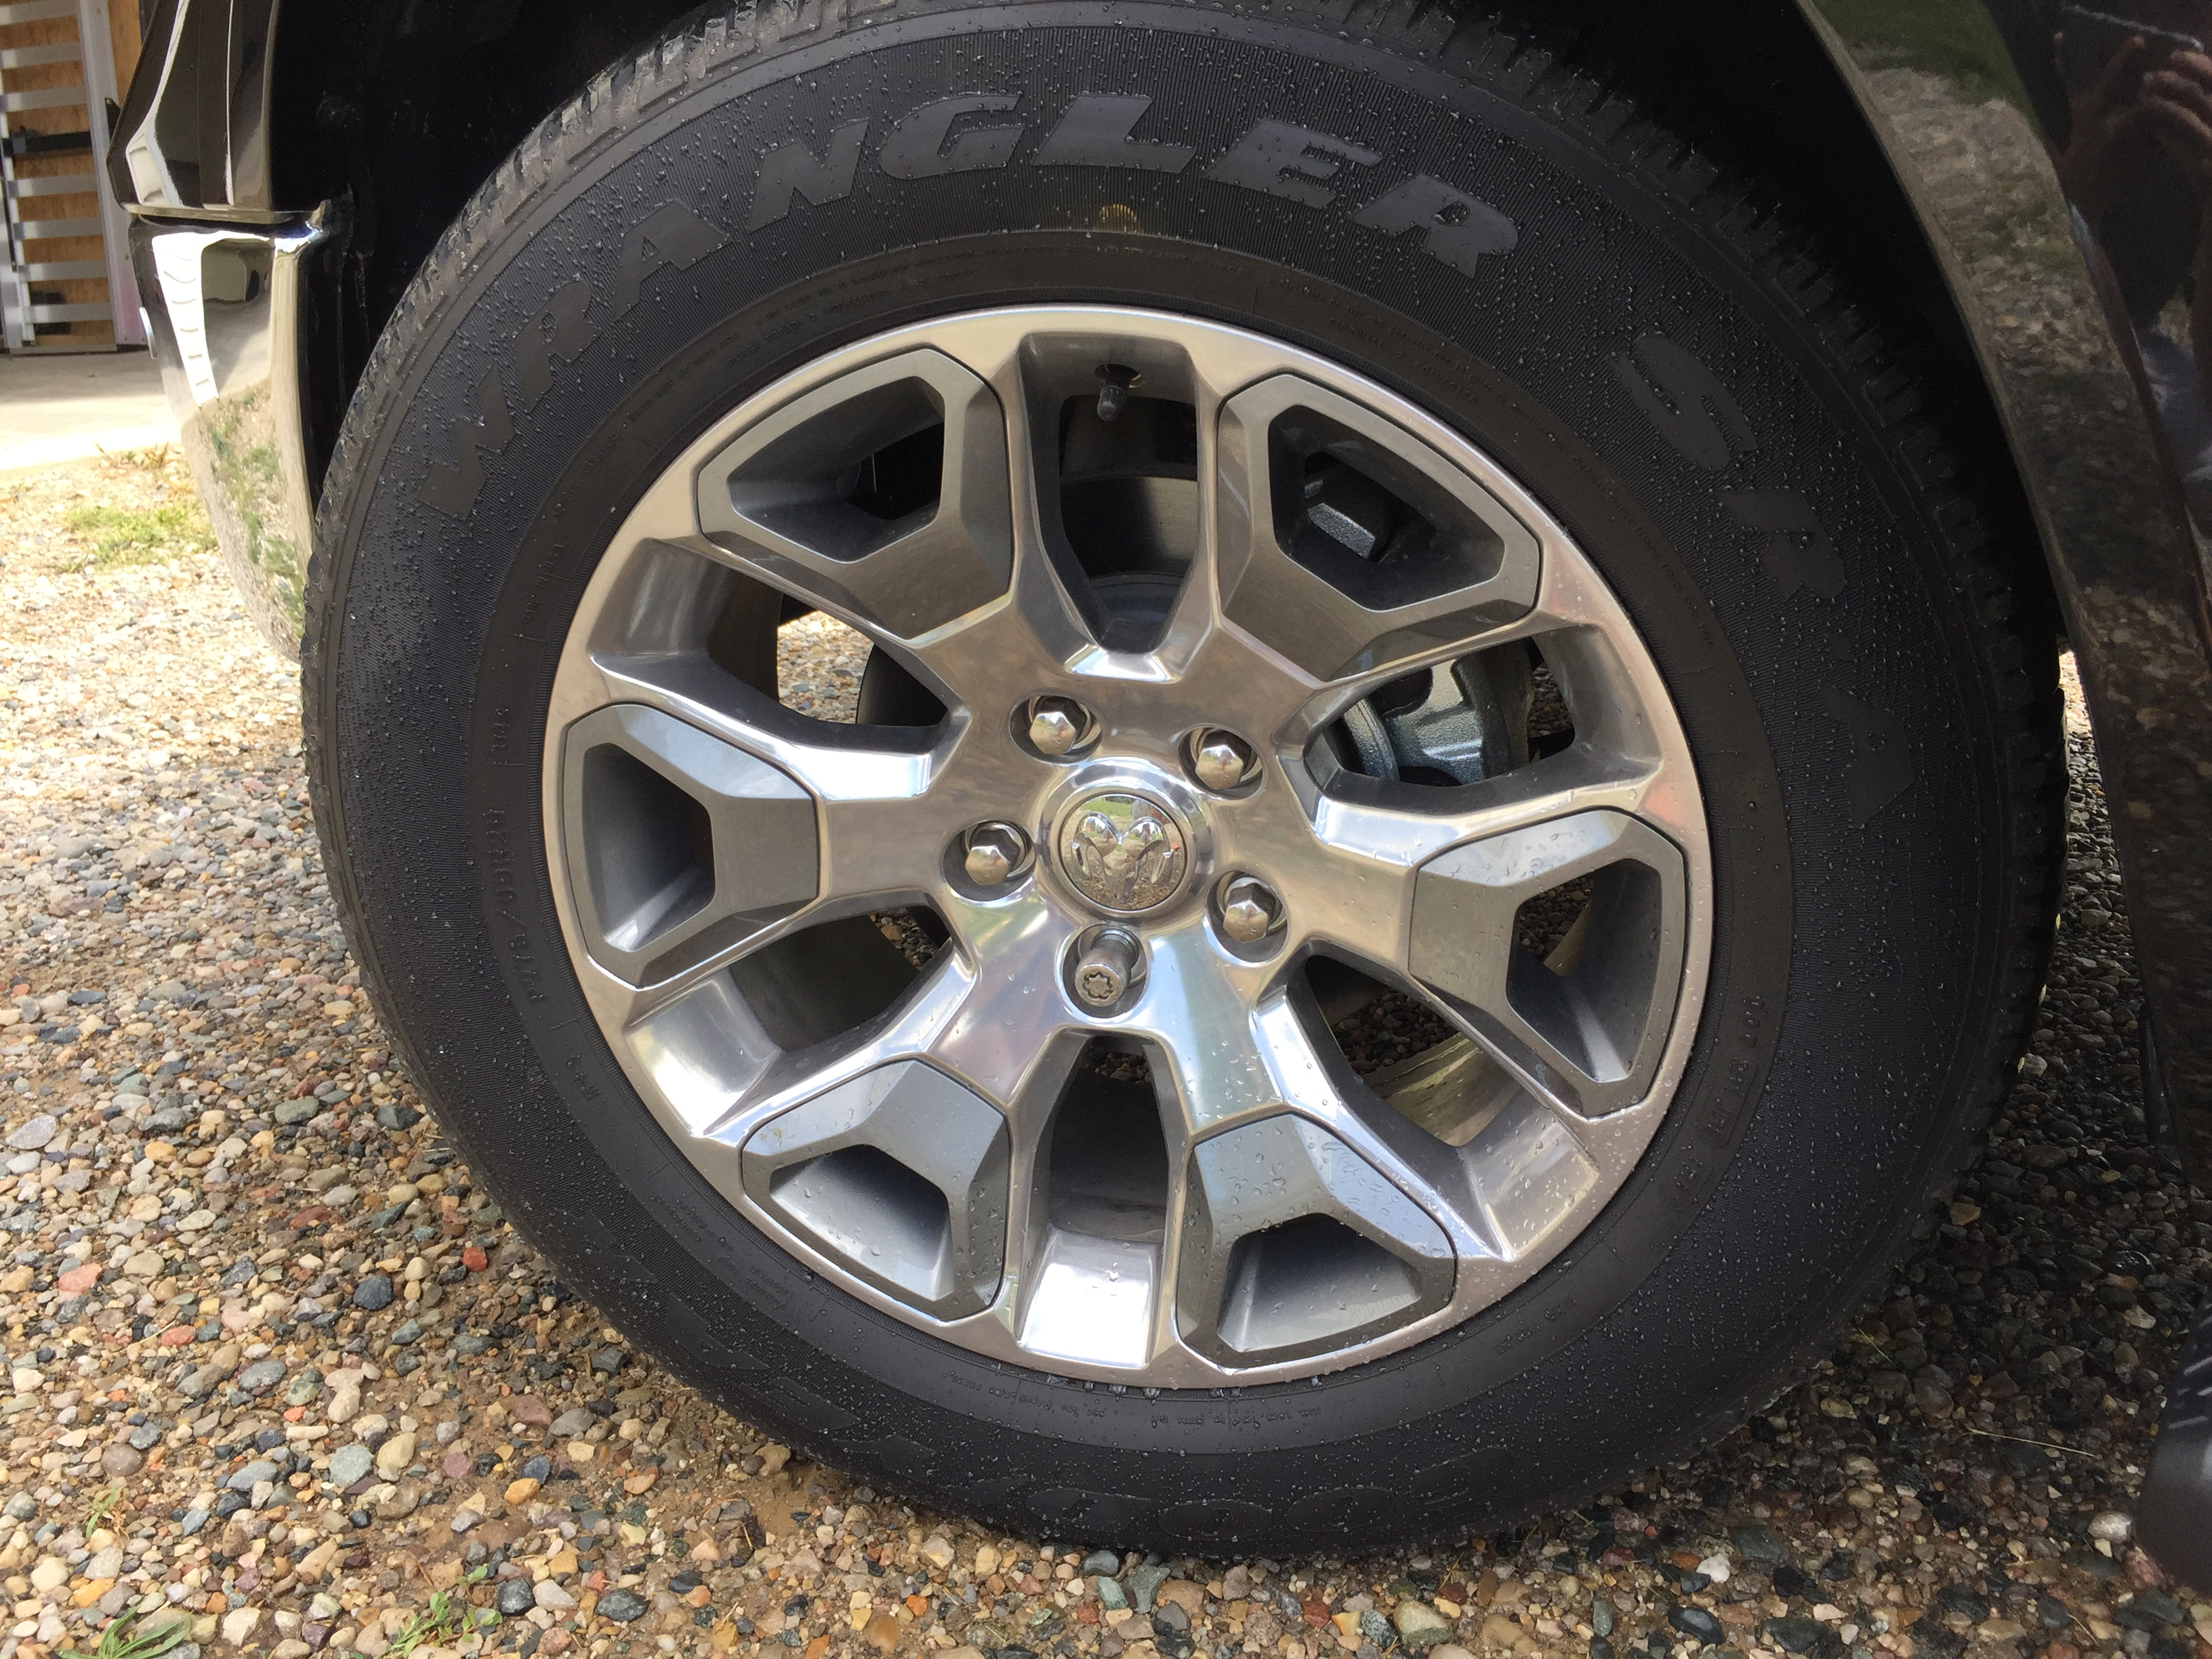 fs 2017 ram 1500 limited wheels and goodyear tires with only 862 miles on them. Black Bedroom Furniture Sets. Home Design Ideas